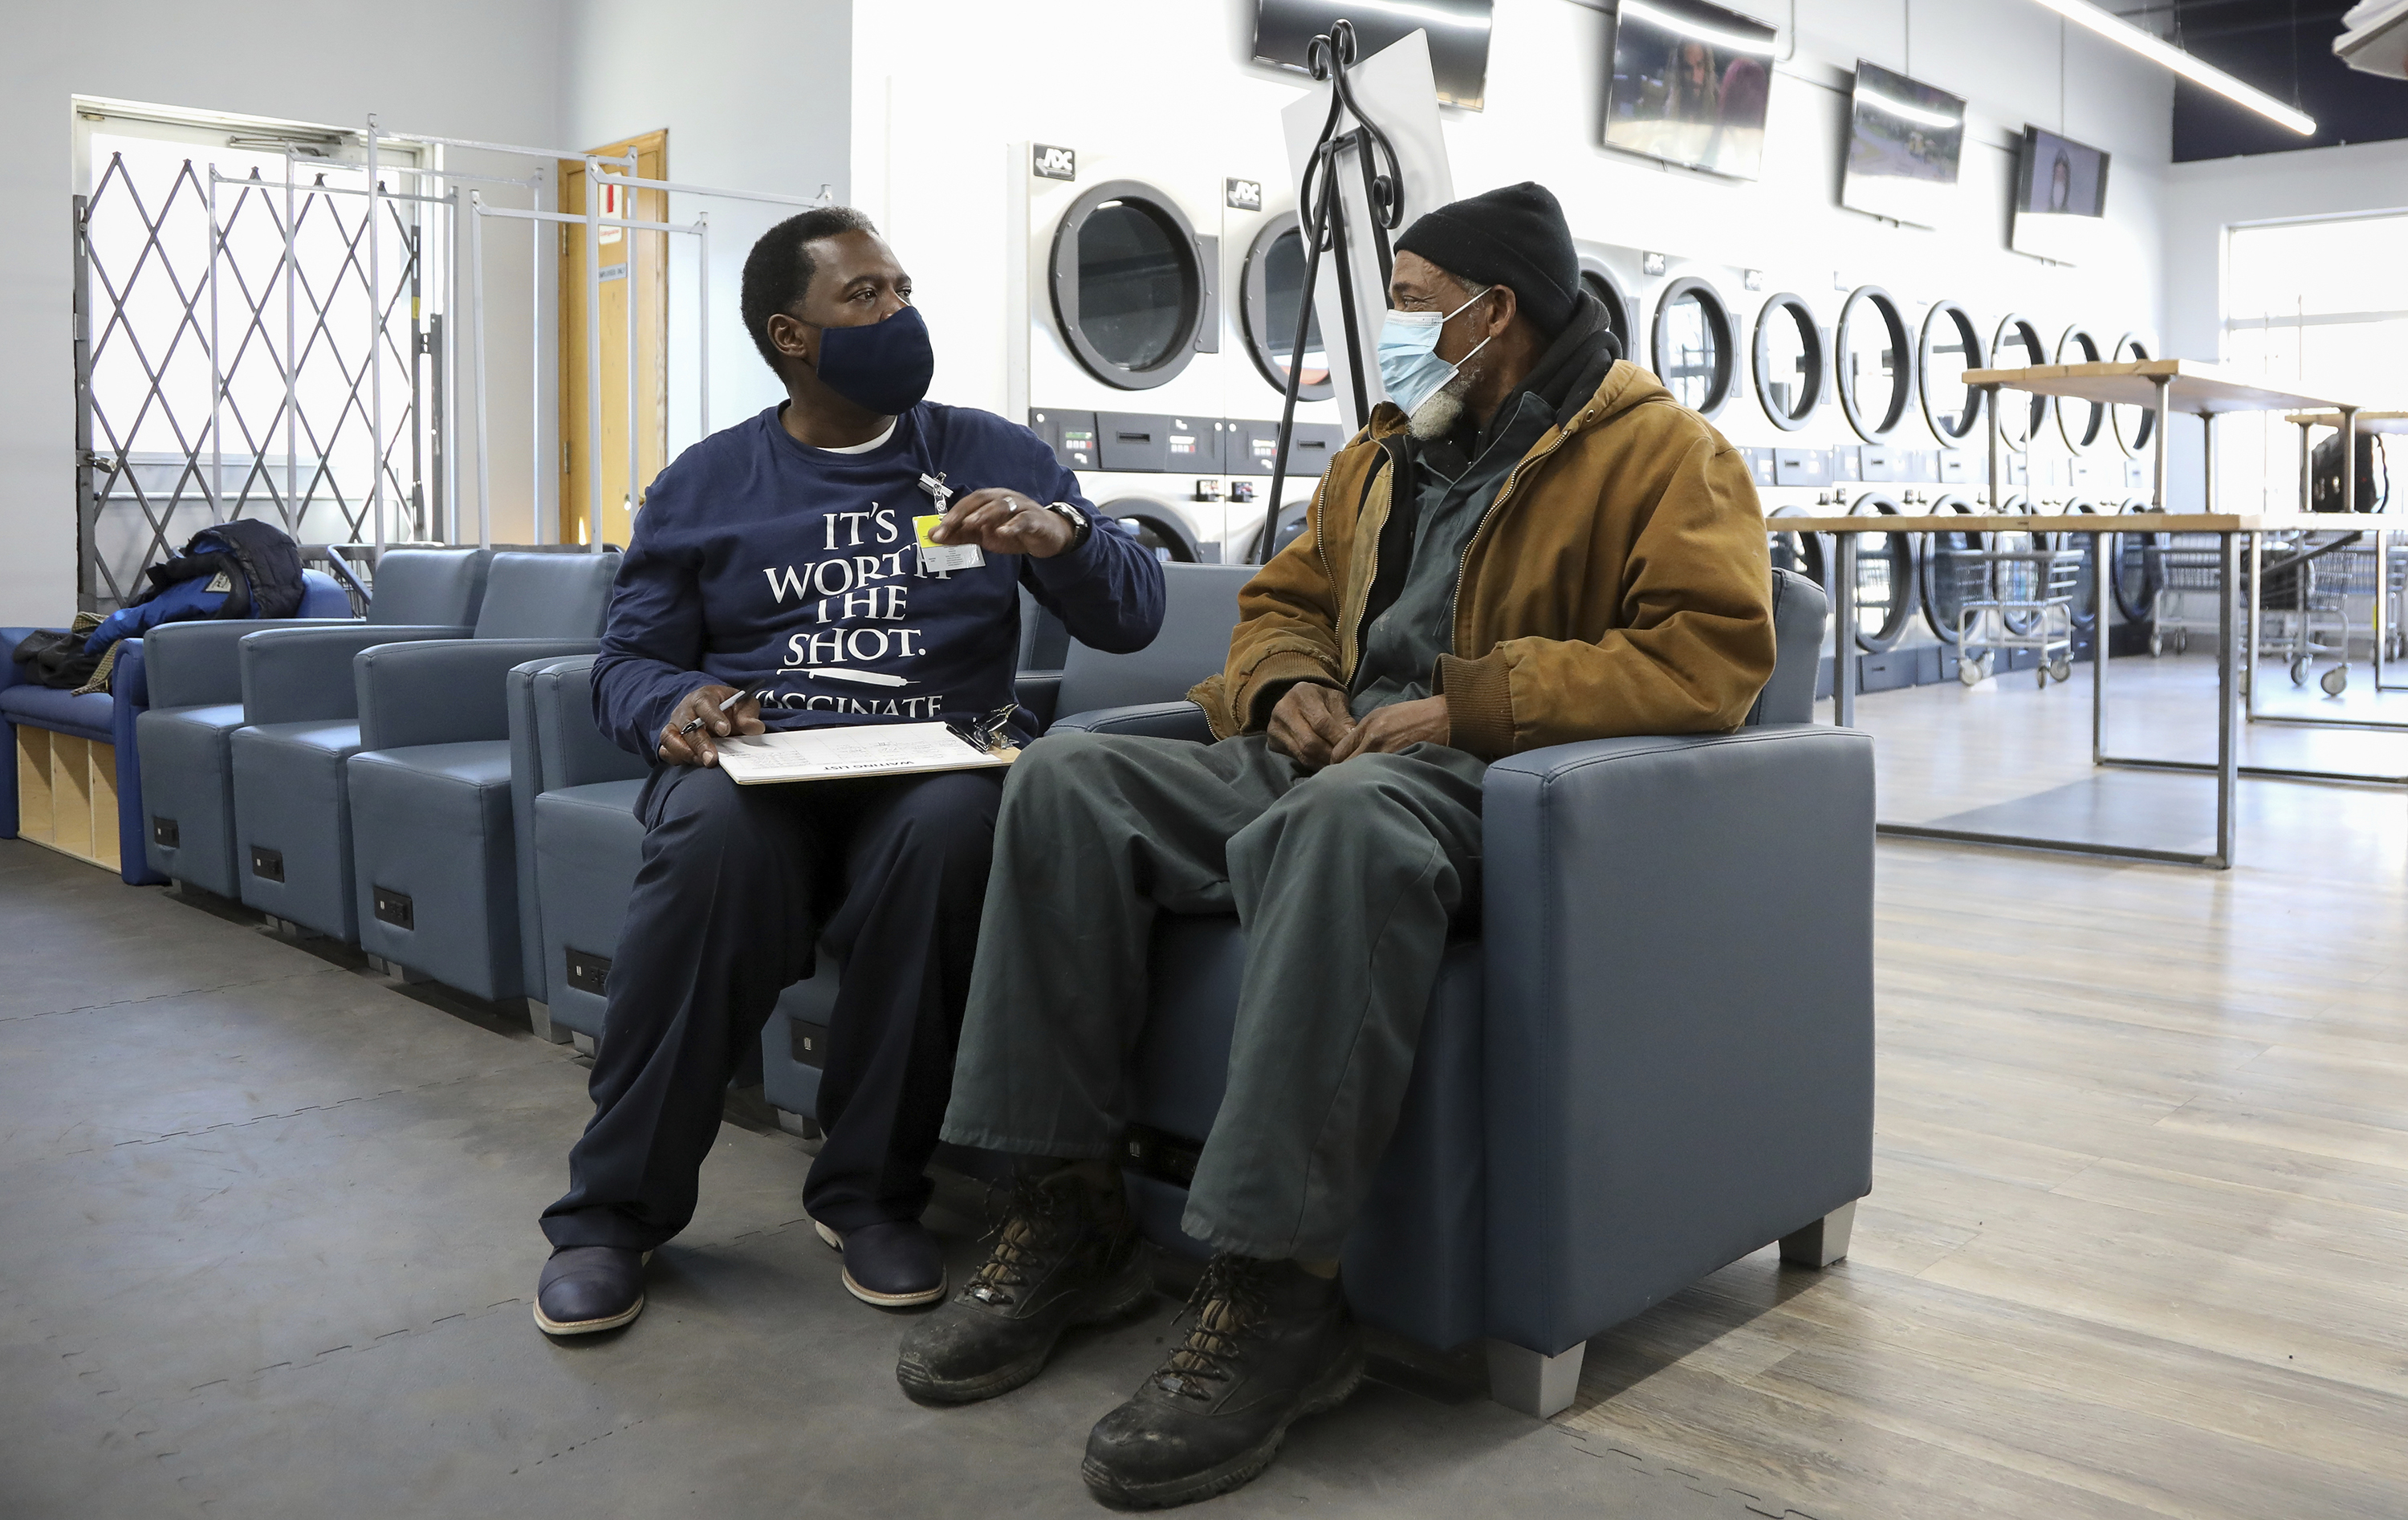 Community outreach worker Herman Simmons, left, makes a vaccination appointment for Theopulis Polk, right, at a Chicago laundromat on Saturday, March 6.